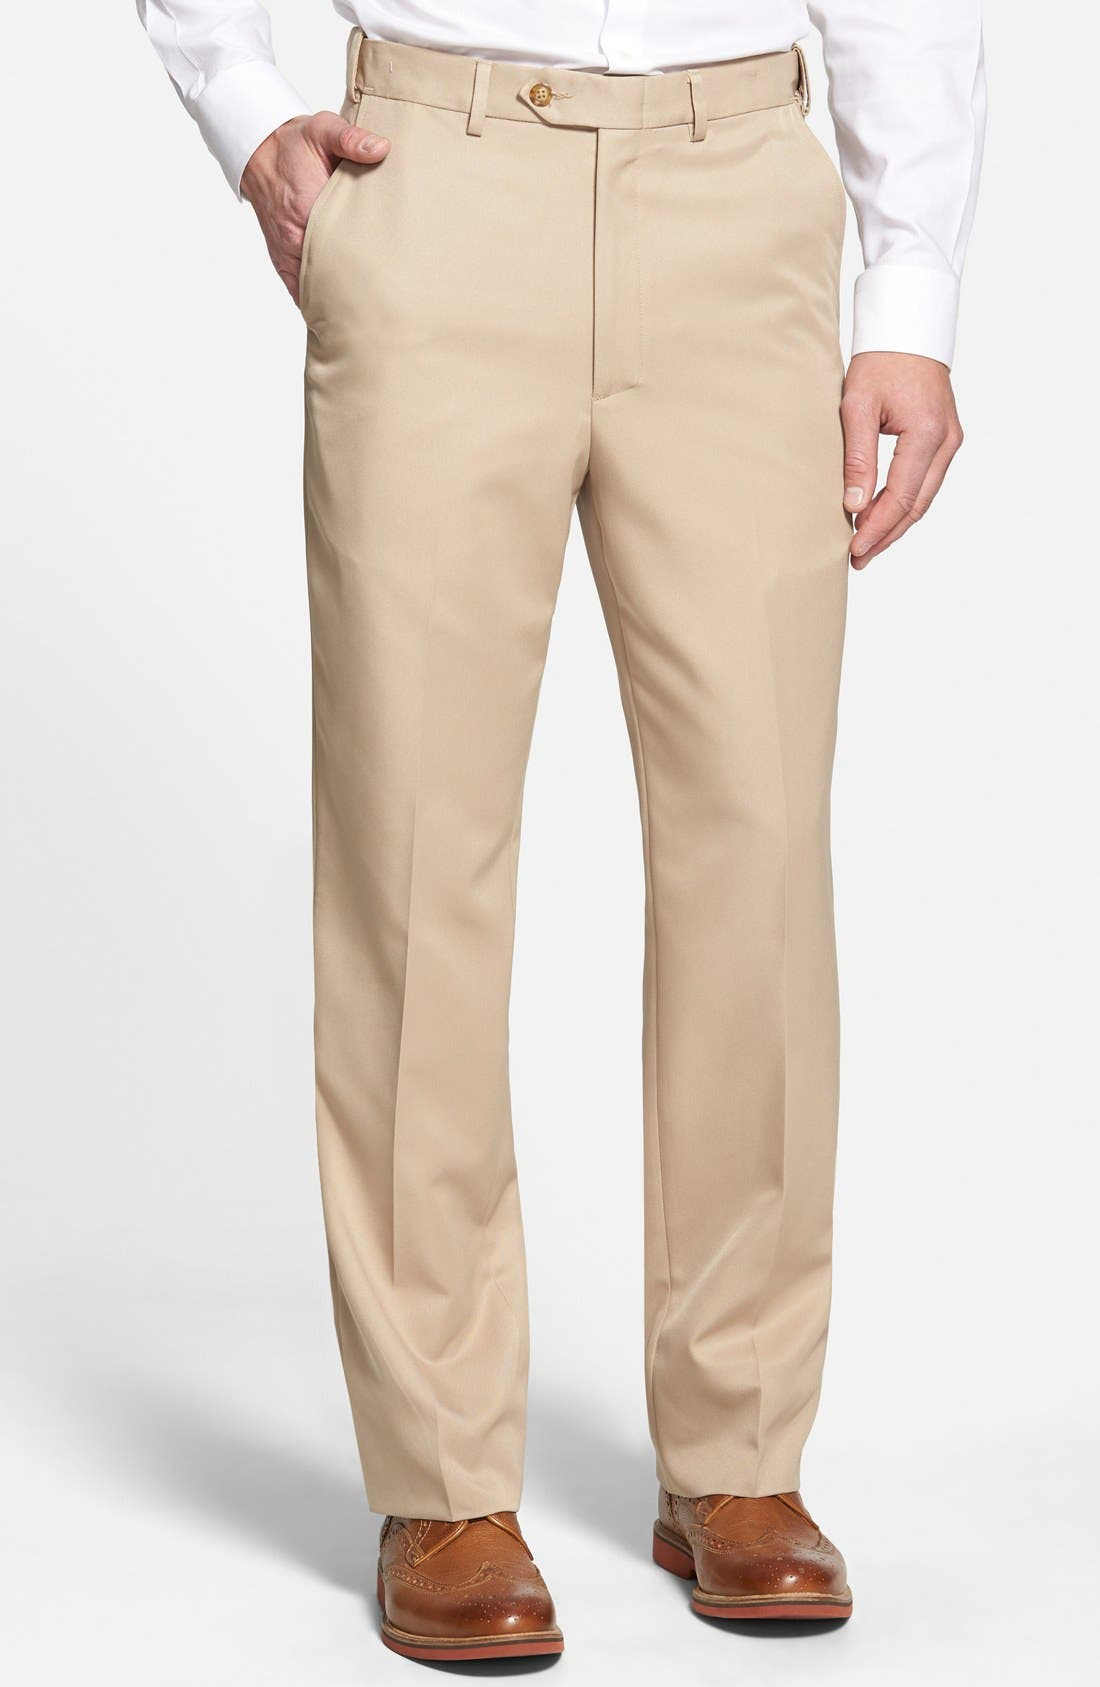 Self Sizer Waist Flat Front Trousers,                             Main thumbnail 1, color,                             Tan